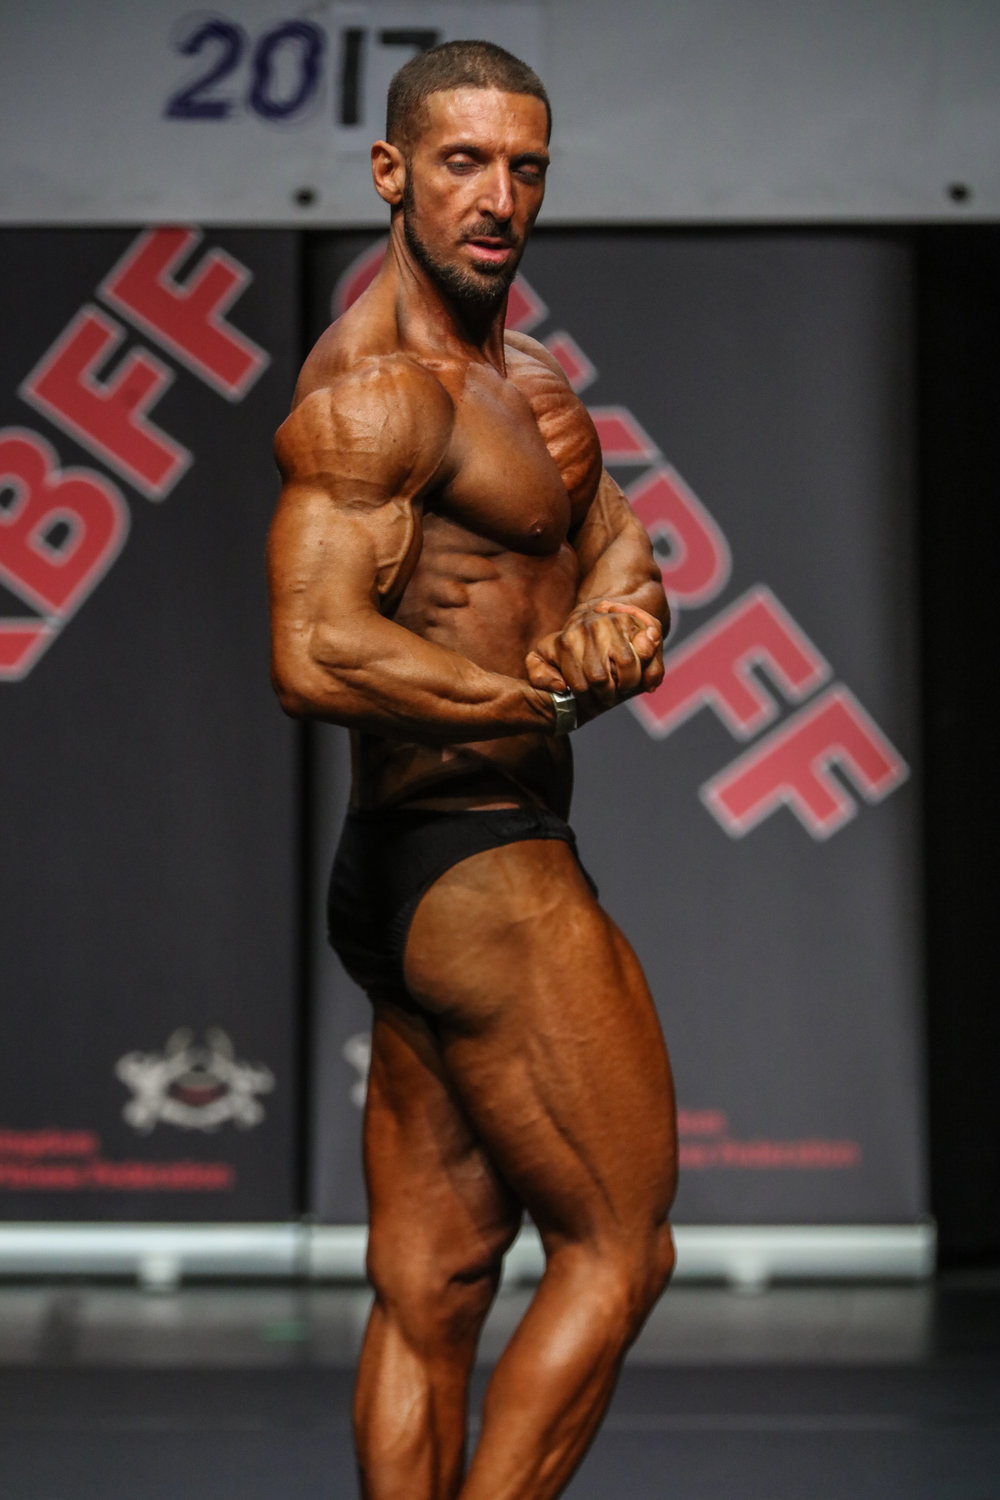 Emi Roberti displays an impressive side chest on his way to victory at last year's UK Nationals. PHOTO: Christopher Bailey